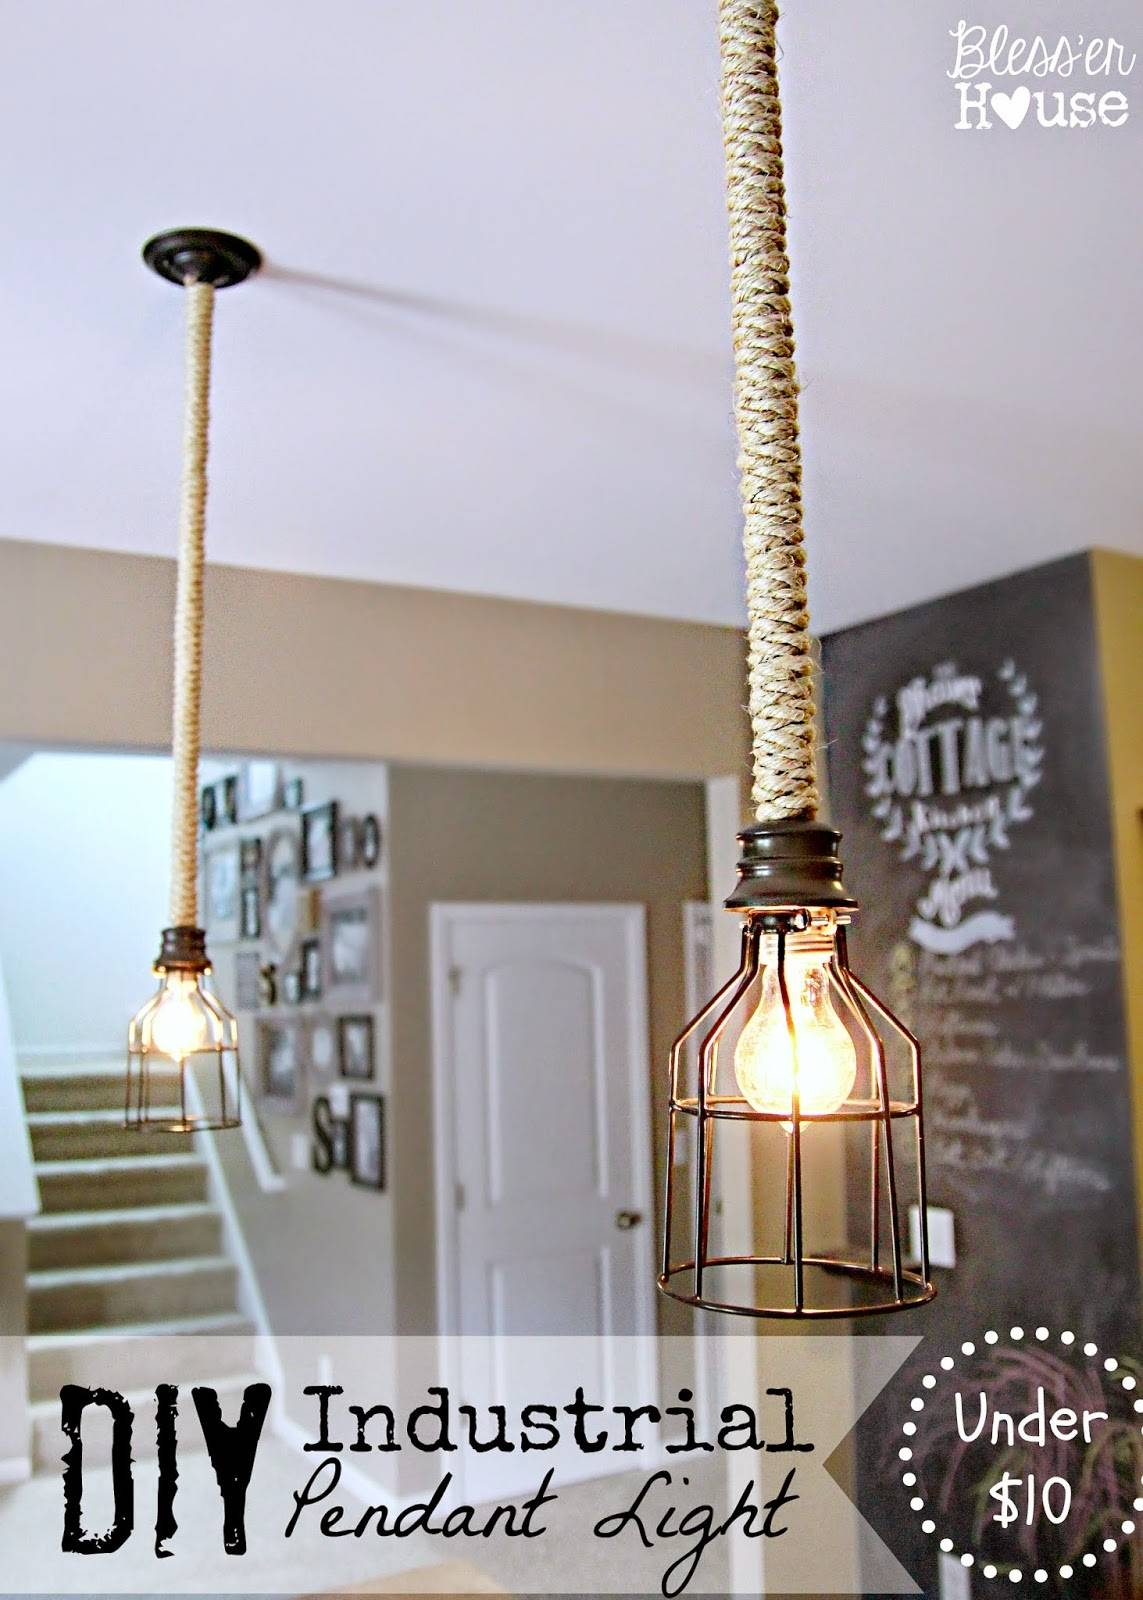 5 Diy Industrial Light Fixtures For Under $25 - Bless'er House for Chicken Wire Pendant Lights (Image 3 of 15)